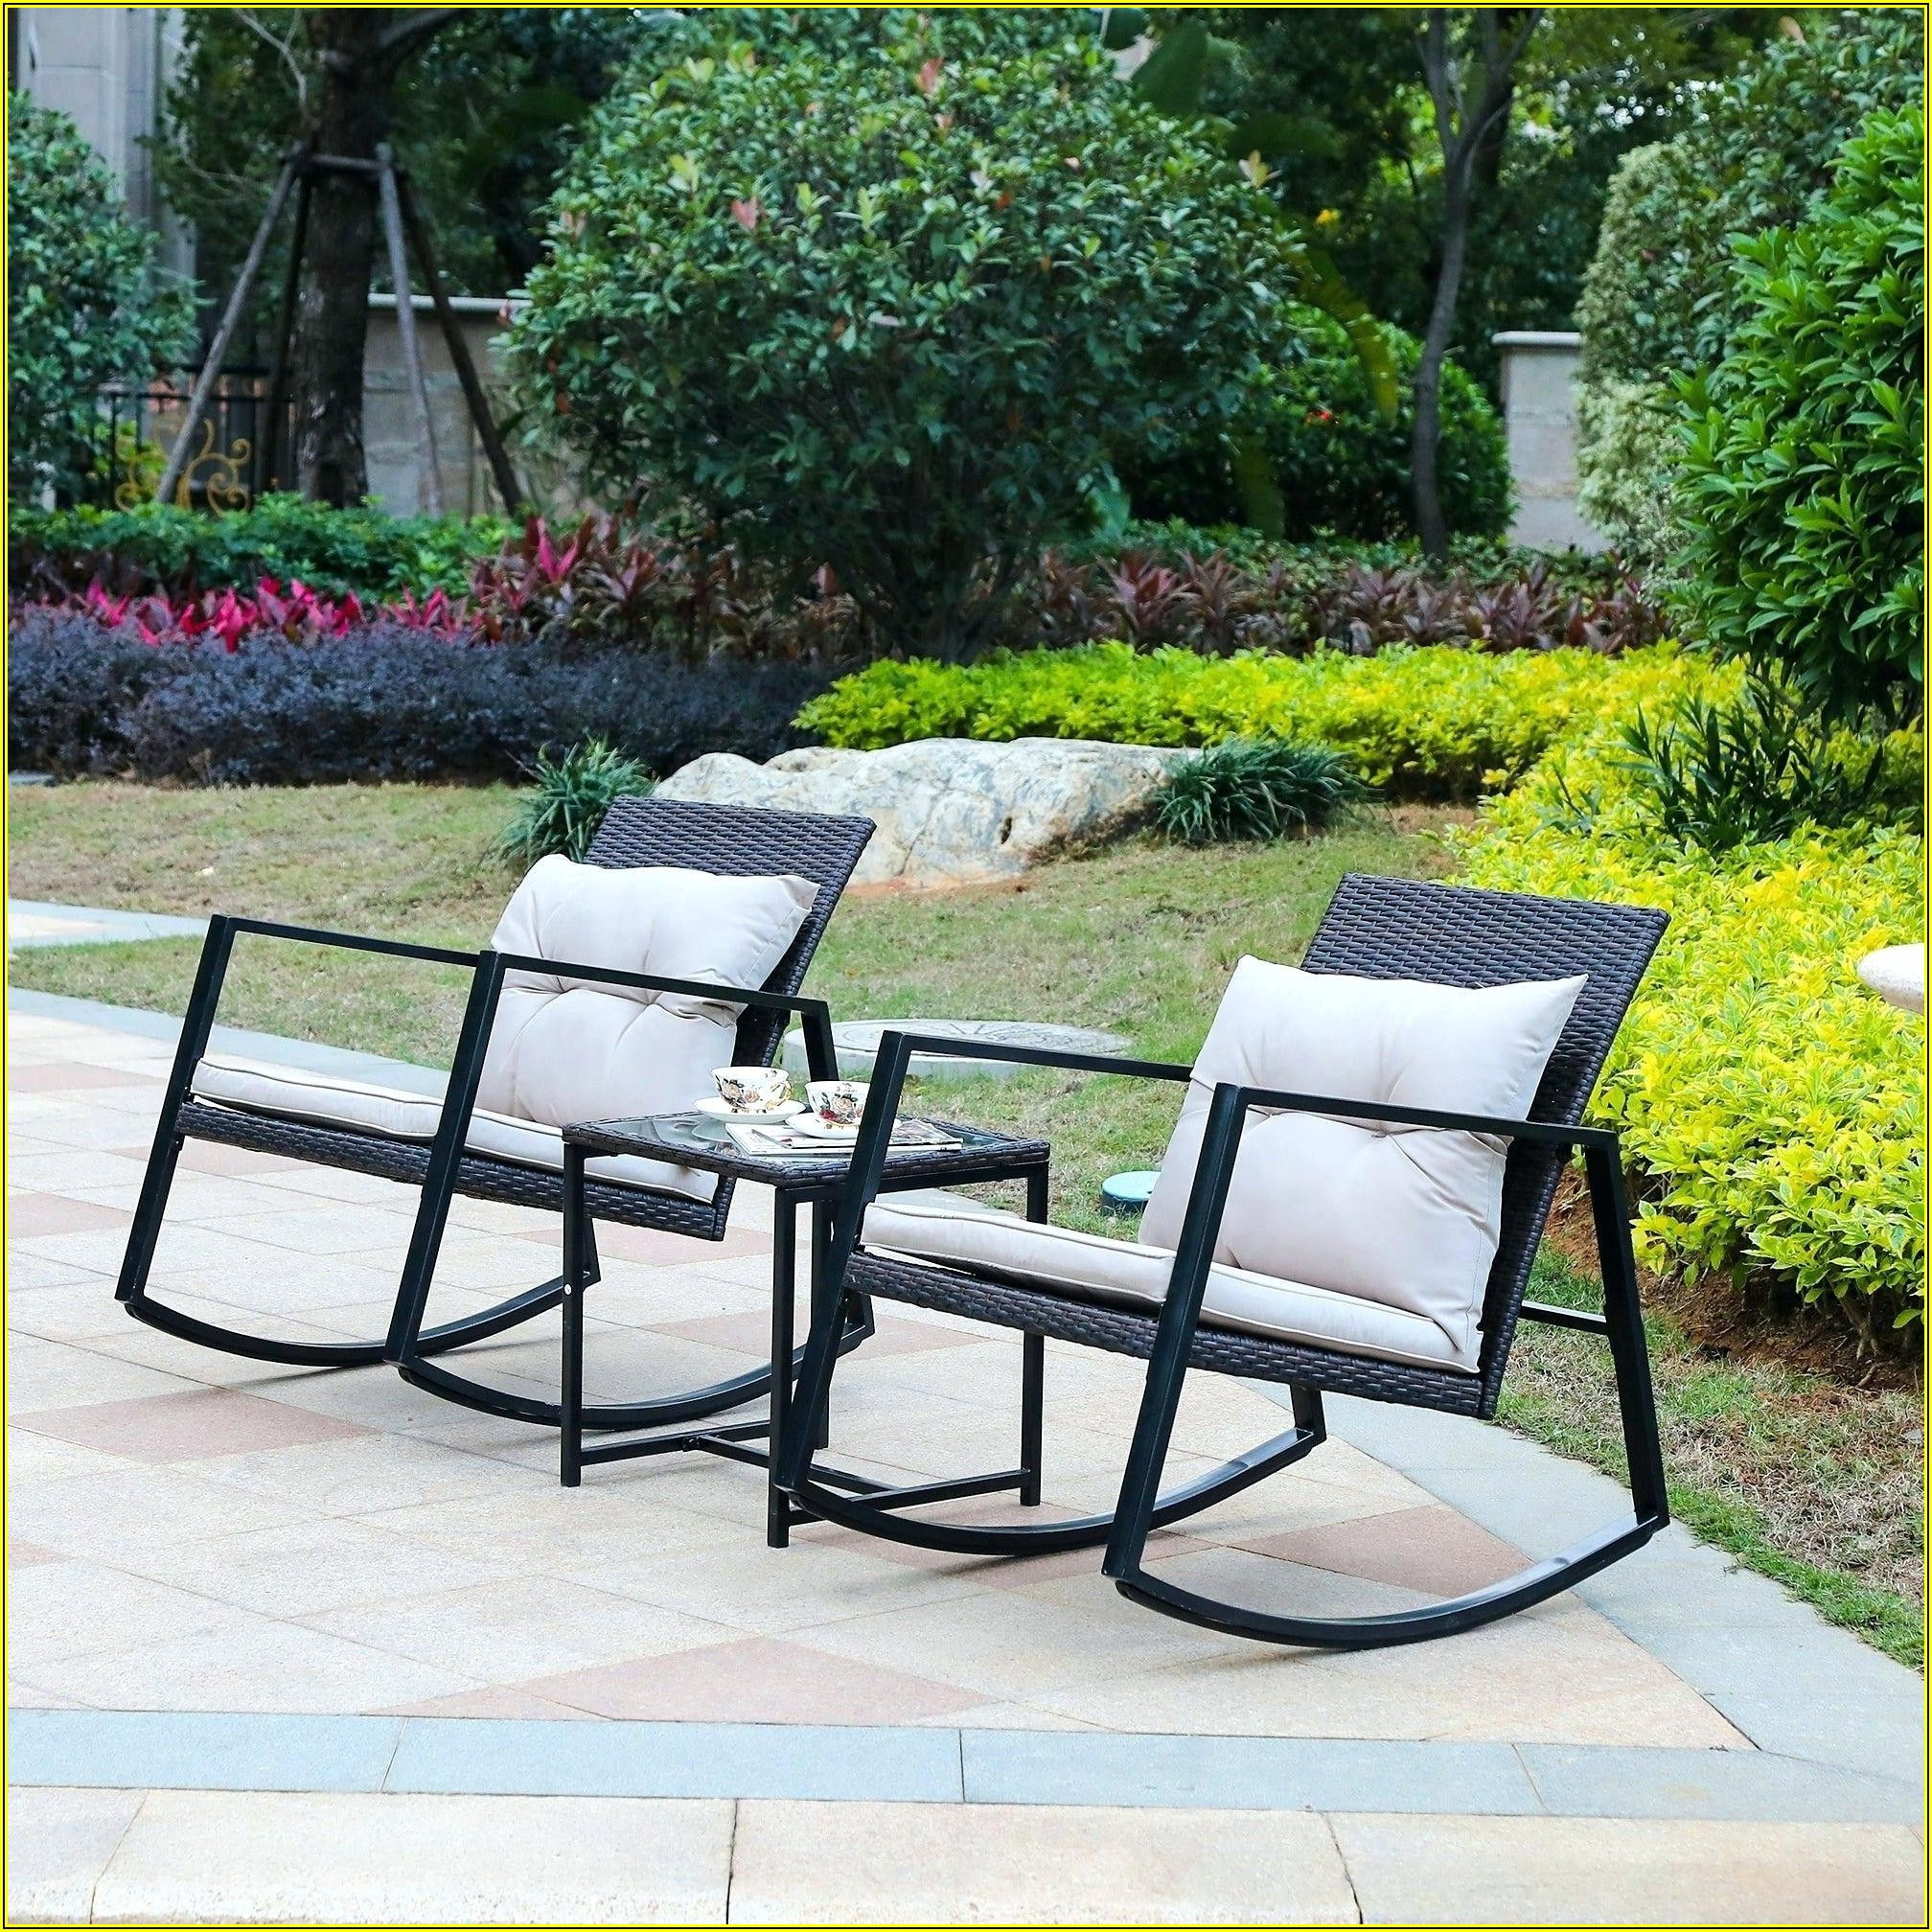 Pvc Patio Chair Cushions